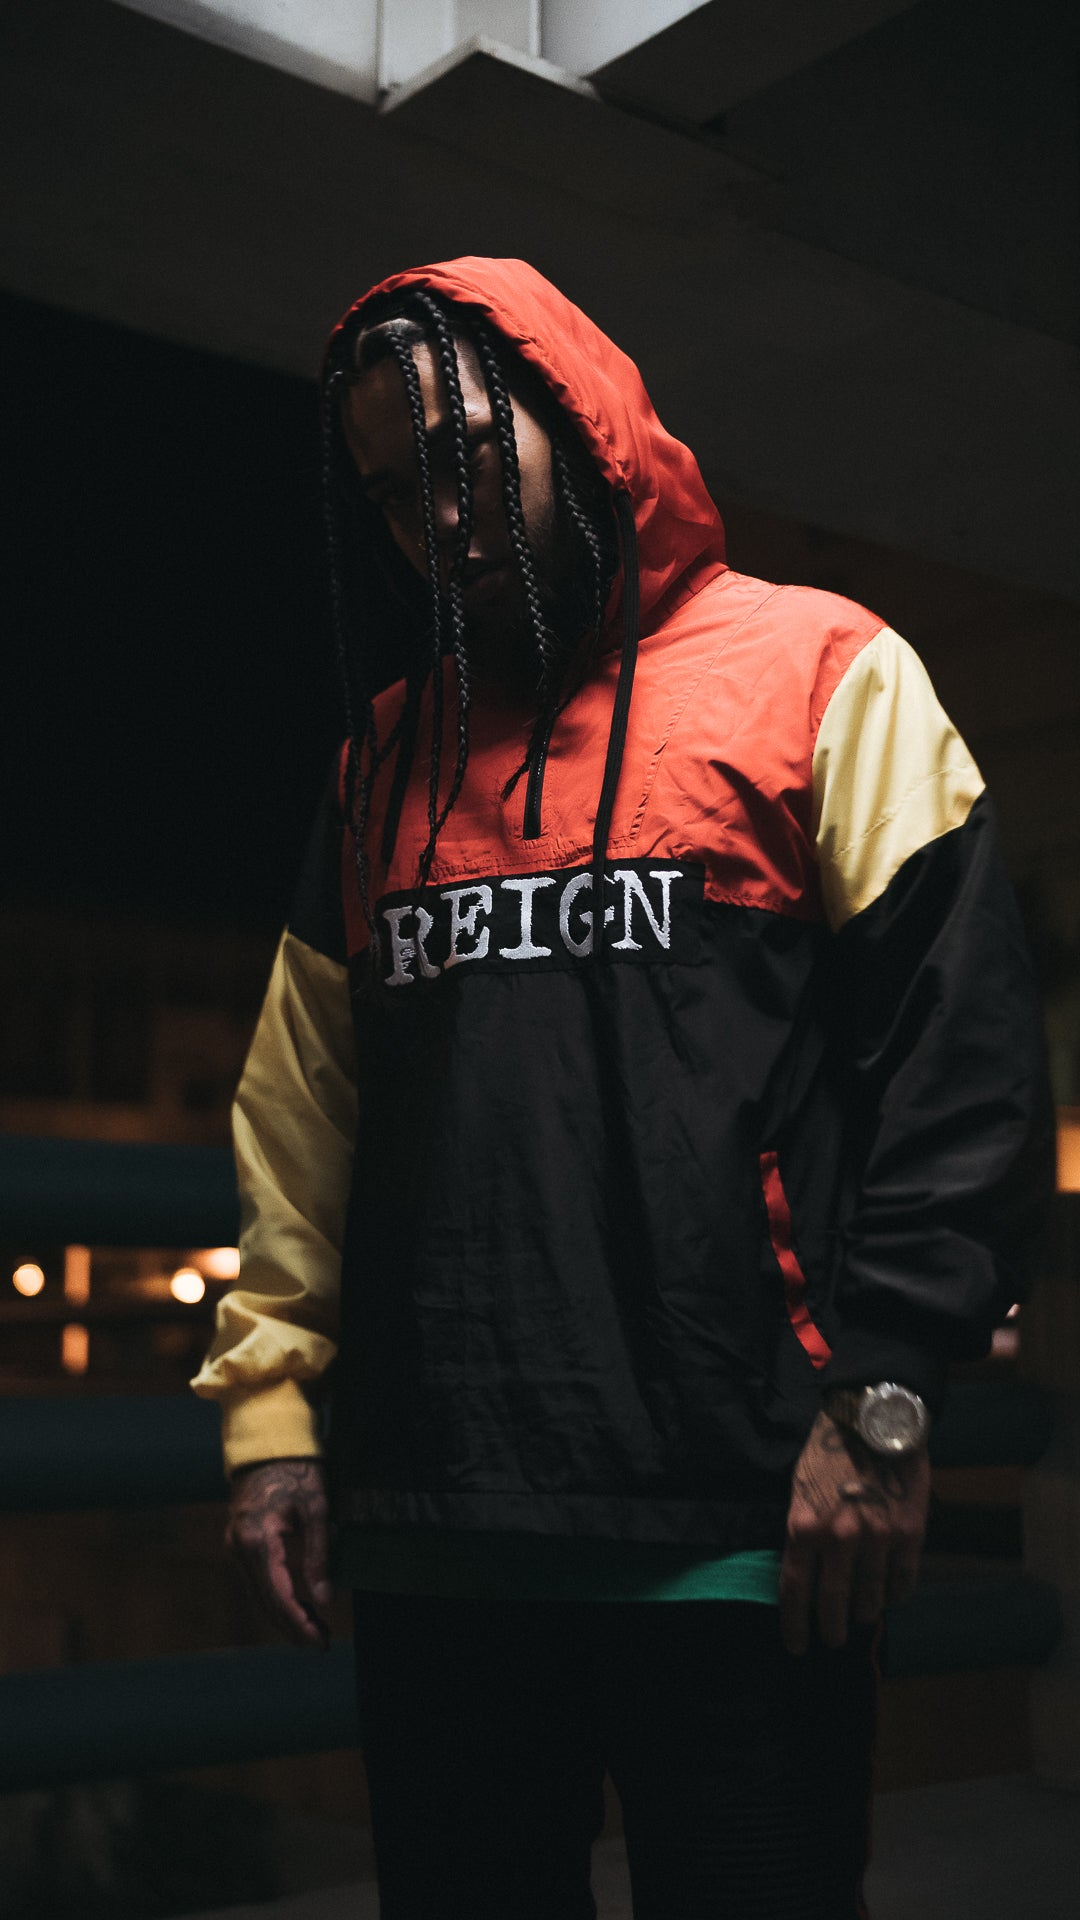 REIGN Windbreaker Jacket - Red/Black/Yellow